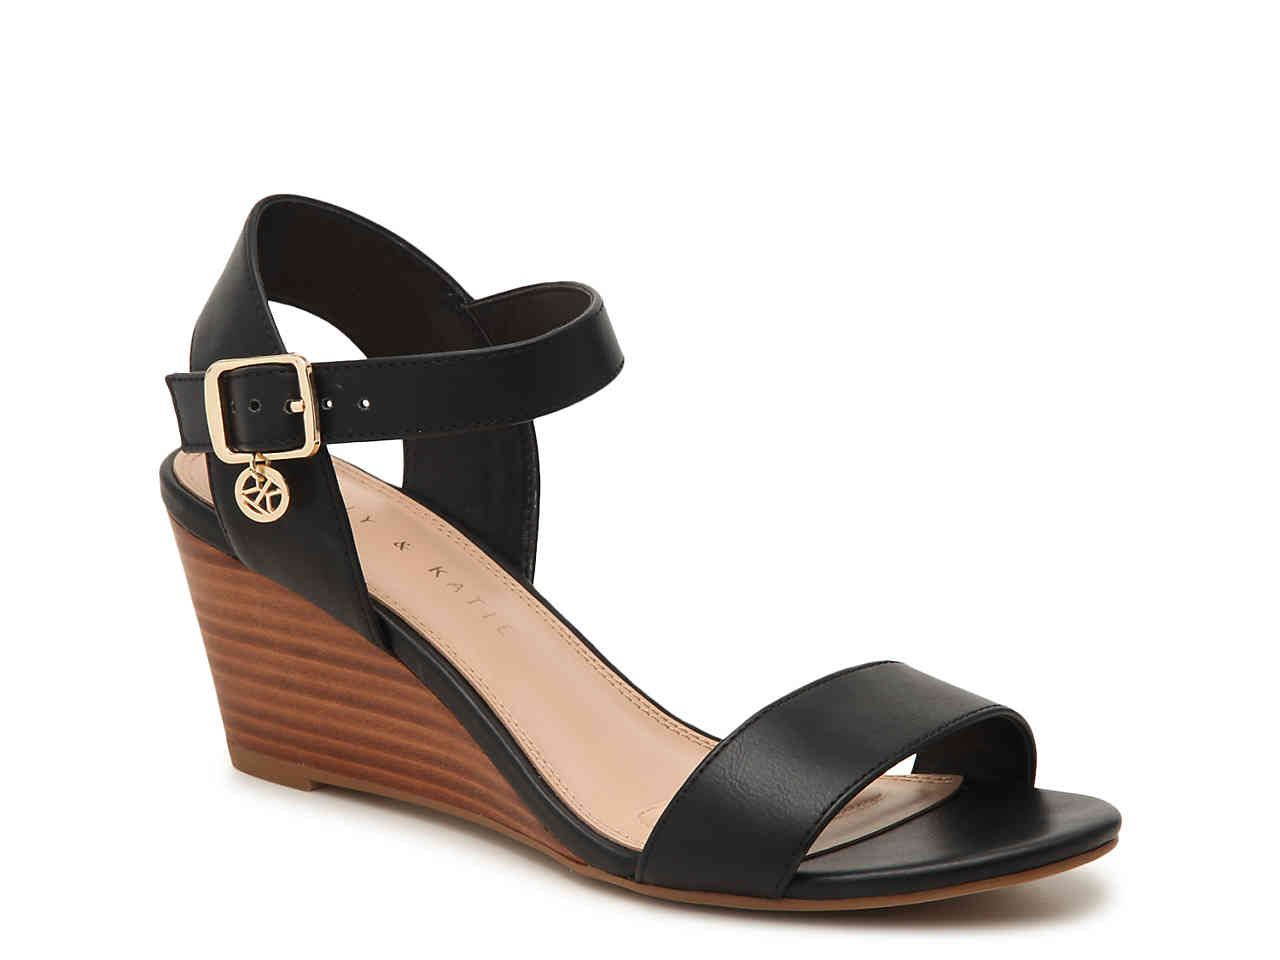 5166abed04 Kelly & Katie Elendra Wedge Sandal Women's Shoes | DSW | Shoes in ...